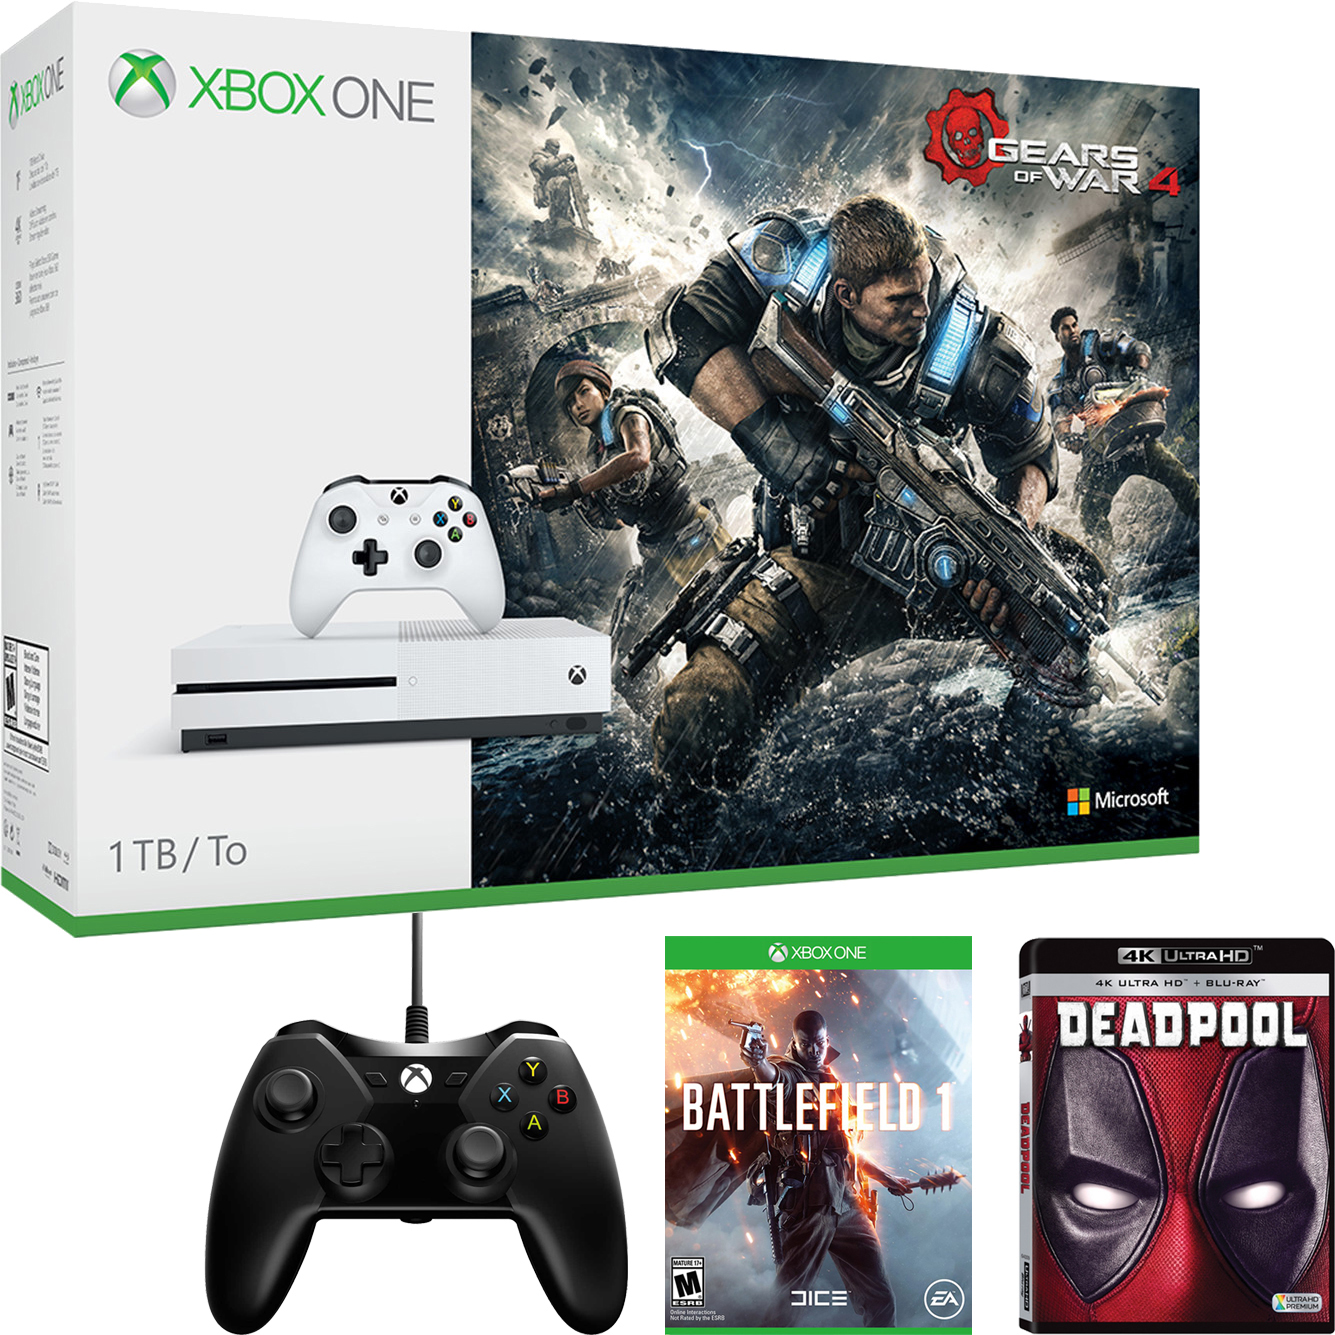 Xbox One S with Your Choice of Bonus Game, 4k UltraHD Movie, and Controller